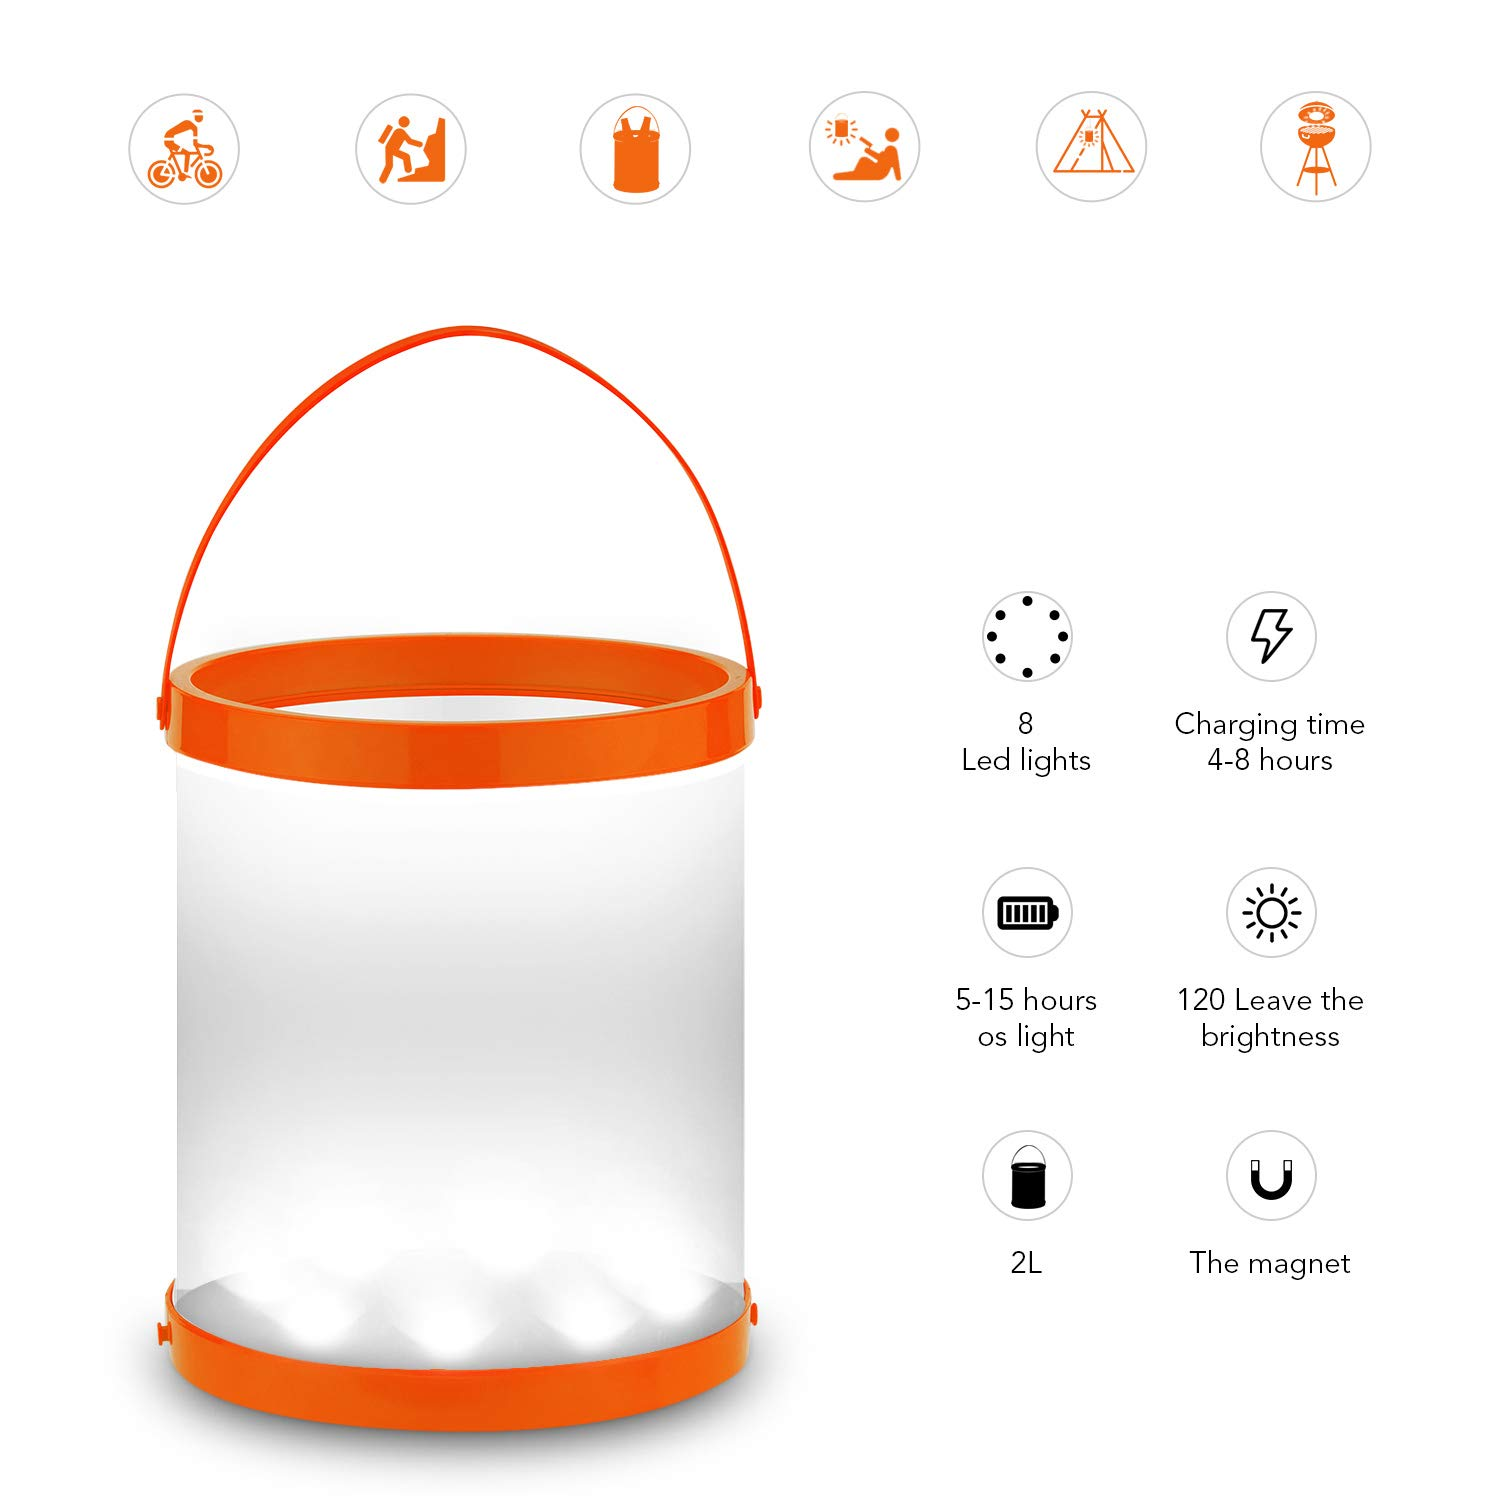 GOGO Lantern Solar Powered LED Camping with Magnet USB Port Charge Solar Panel Portable Collapsible Waterproof Lamp for Ice Bucket BBQ Fishing Hiking Tent Garden